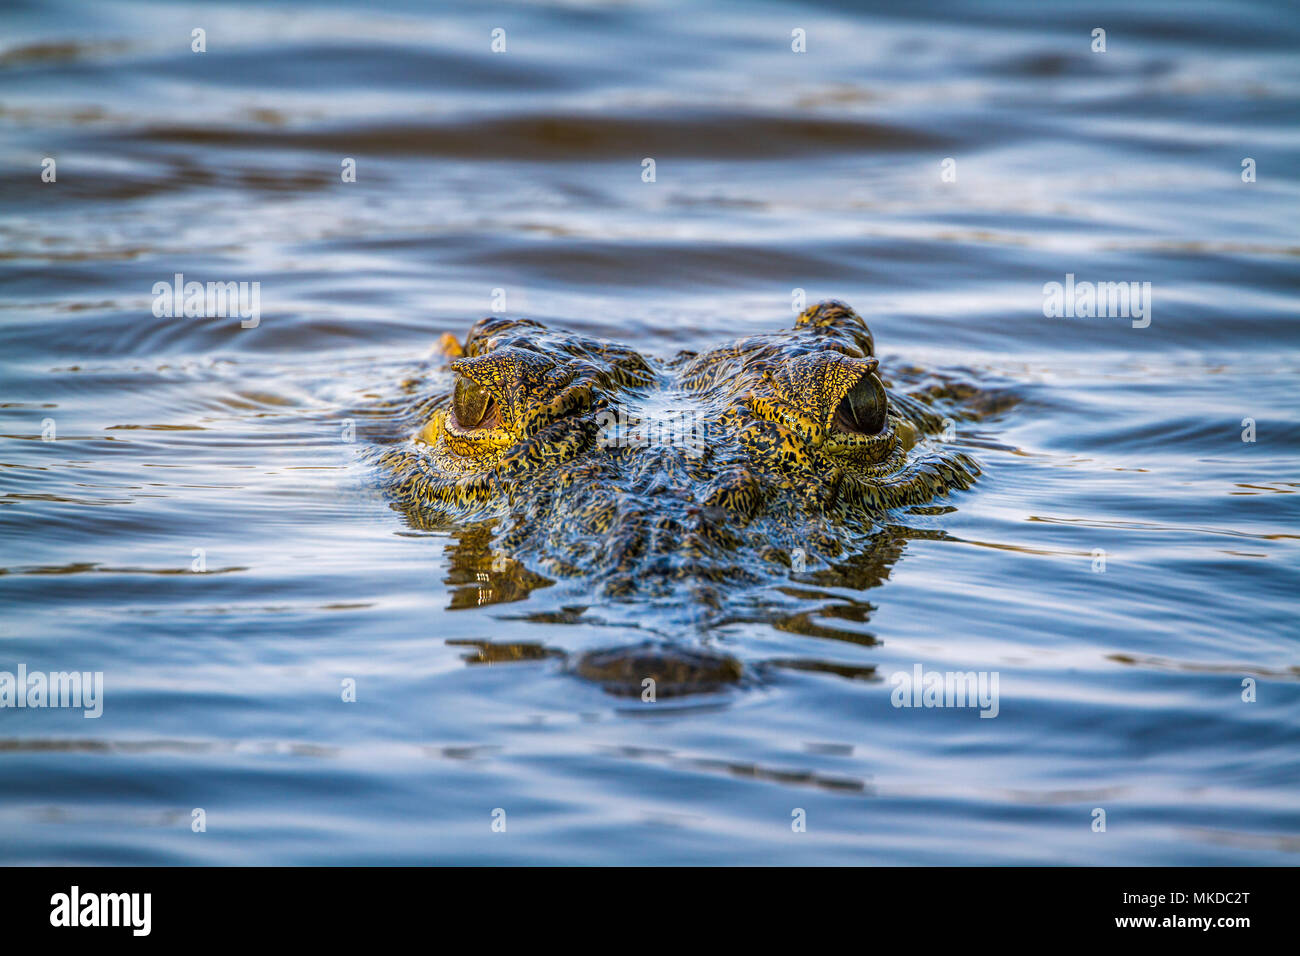 Nile crocodile (Crocodylus niloticus) in Kruger National park, South Africa - Stock Image